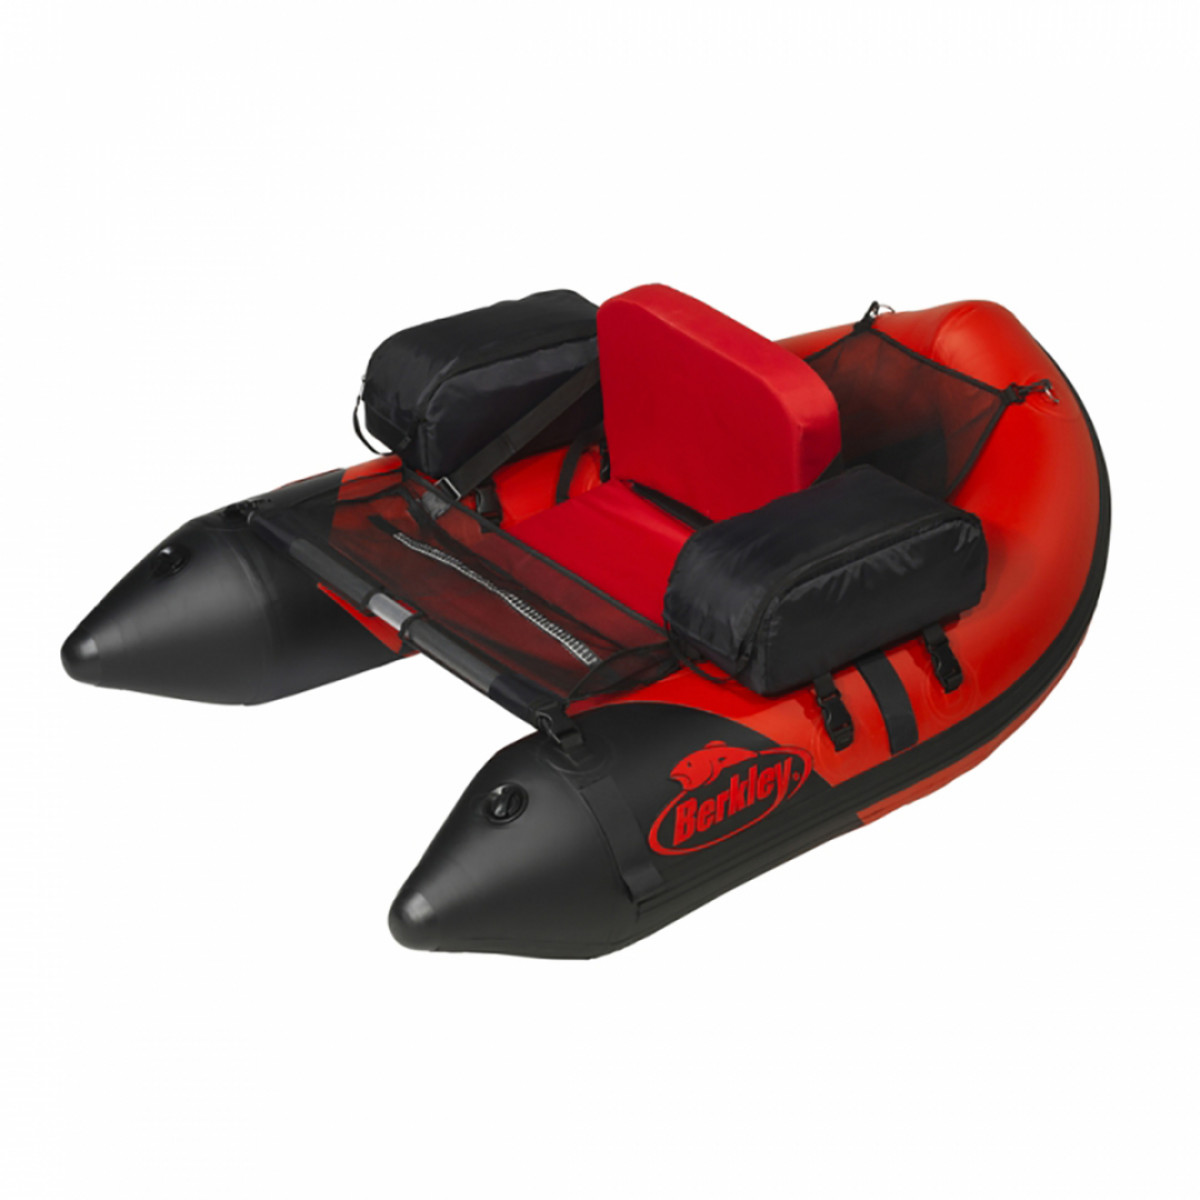 Tec Belly Boat Ripple XCD